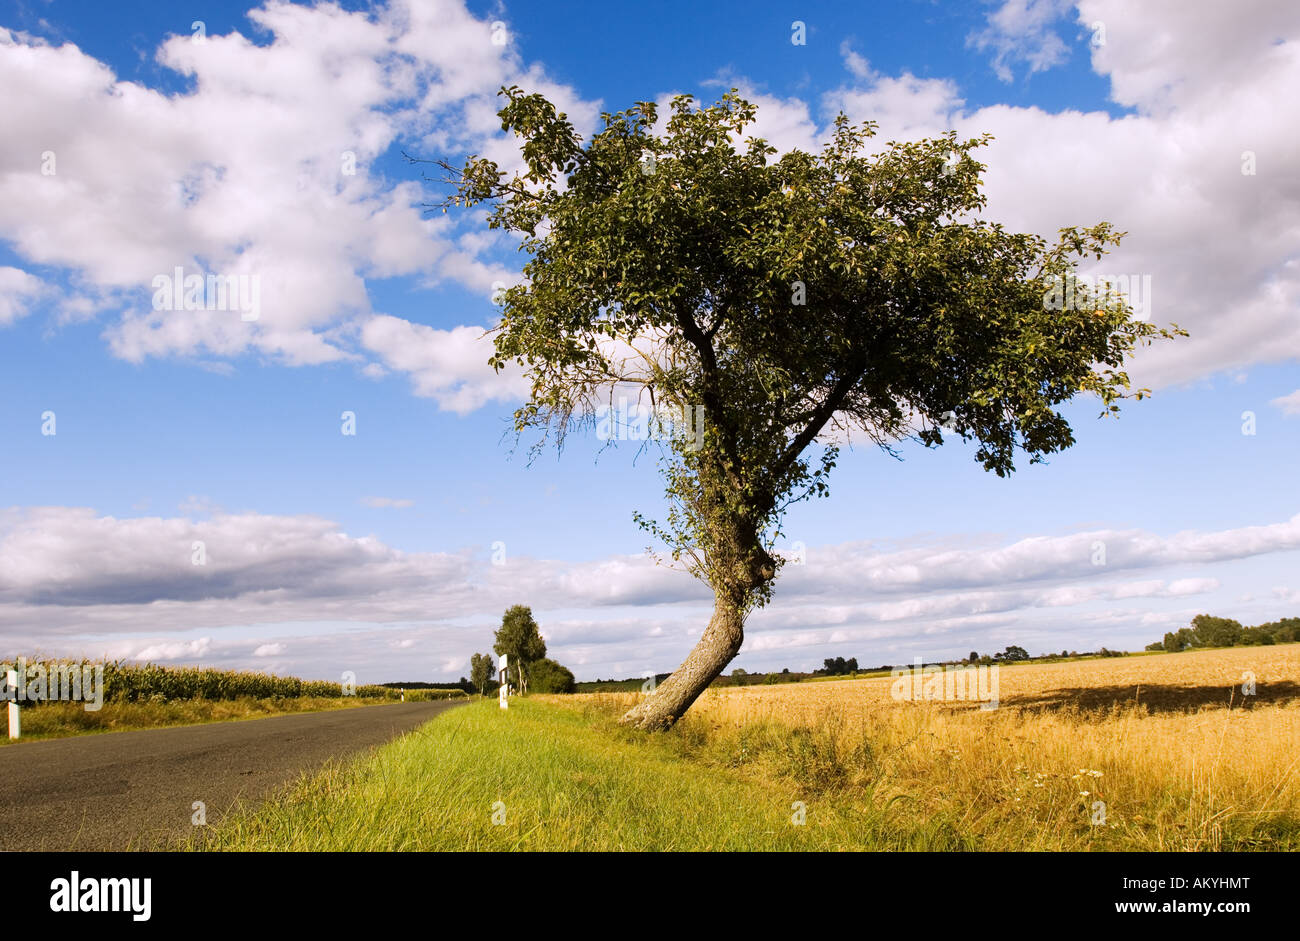 Apple tree at a highway. Road-side tree in the Flaeming, Brandenburg, Germany - Stock Image